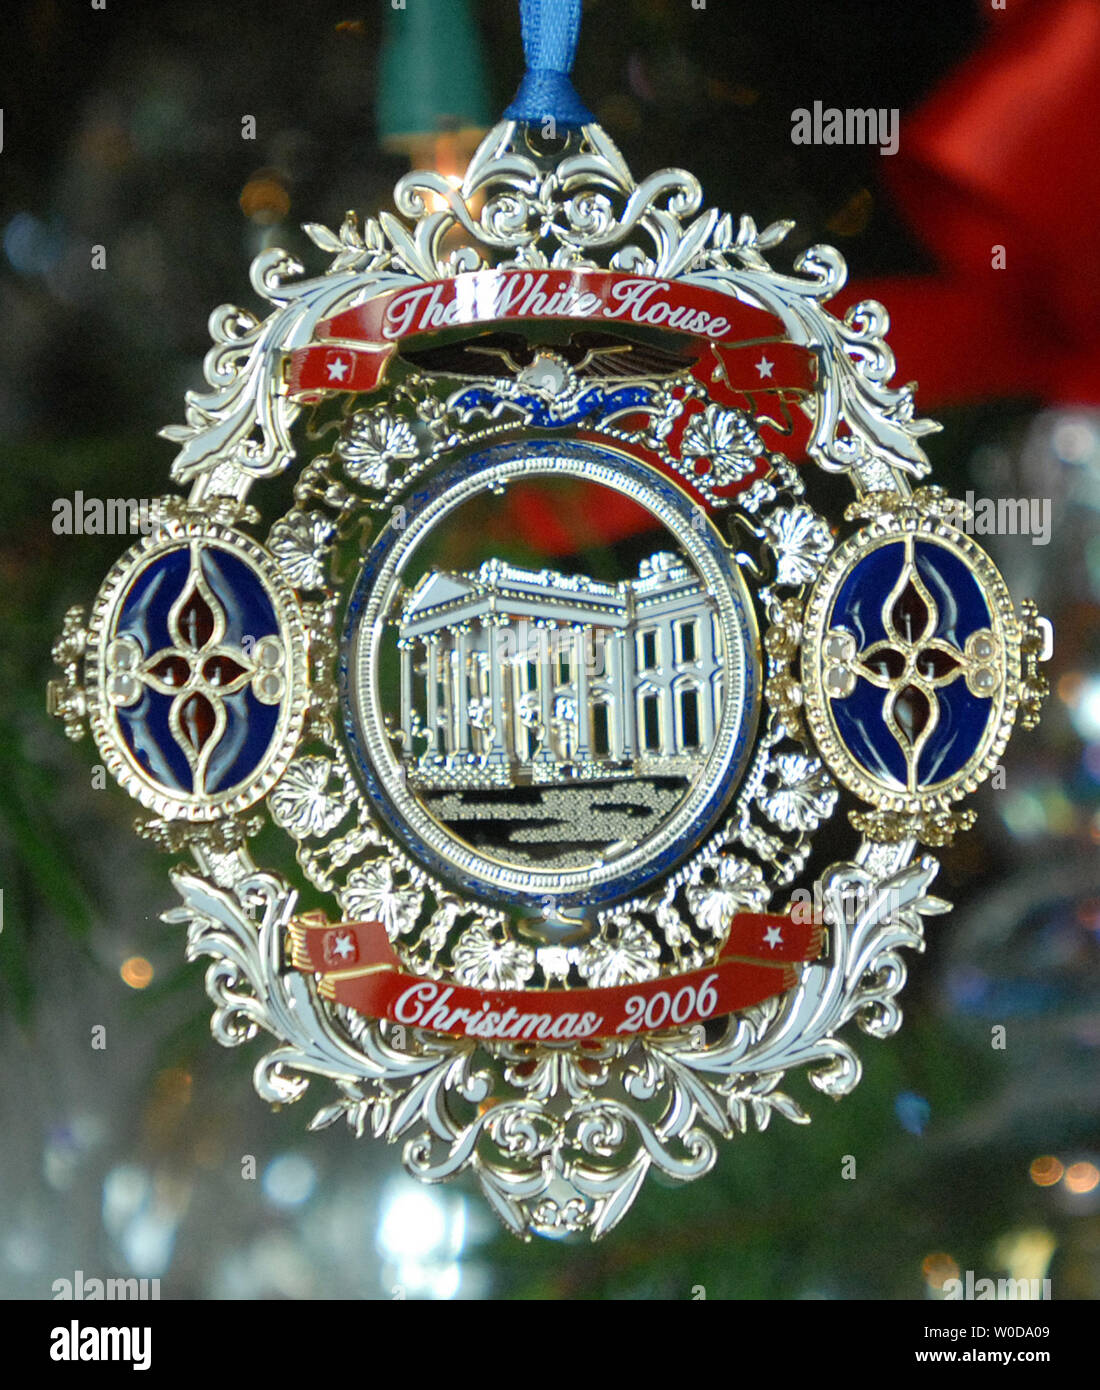 White House Christmas Ornament.The Official White House Christmas Ornament Is On Display In